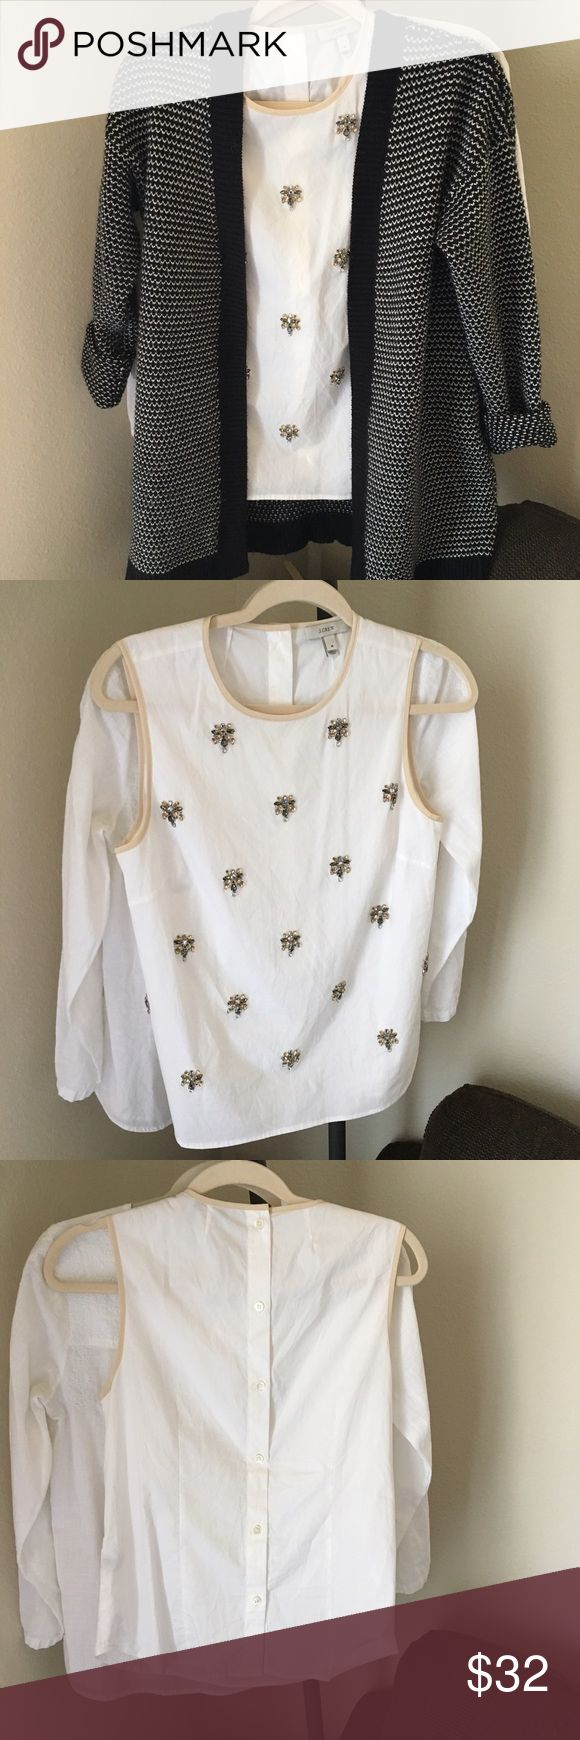 💎J. Crew Jeweled White Tank💎 100% Cotton  This gorgeous jeweled white tank with cream accents from J. Crew is an absolute wardrobe must have. This is perfect to throw on with a pair of chinos for a summer barbeque or with a blazer or cardigan at work! As always, comment with questions and bundles of 3+ are 15% off! J. Crew Tops Tank Tops